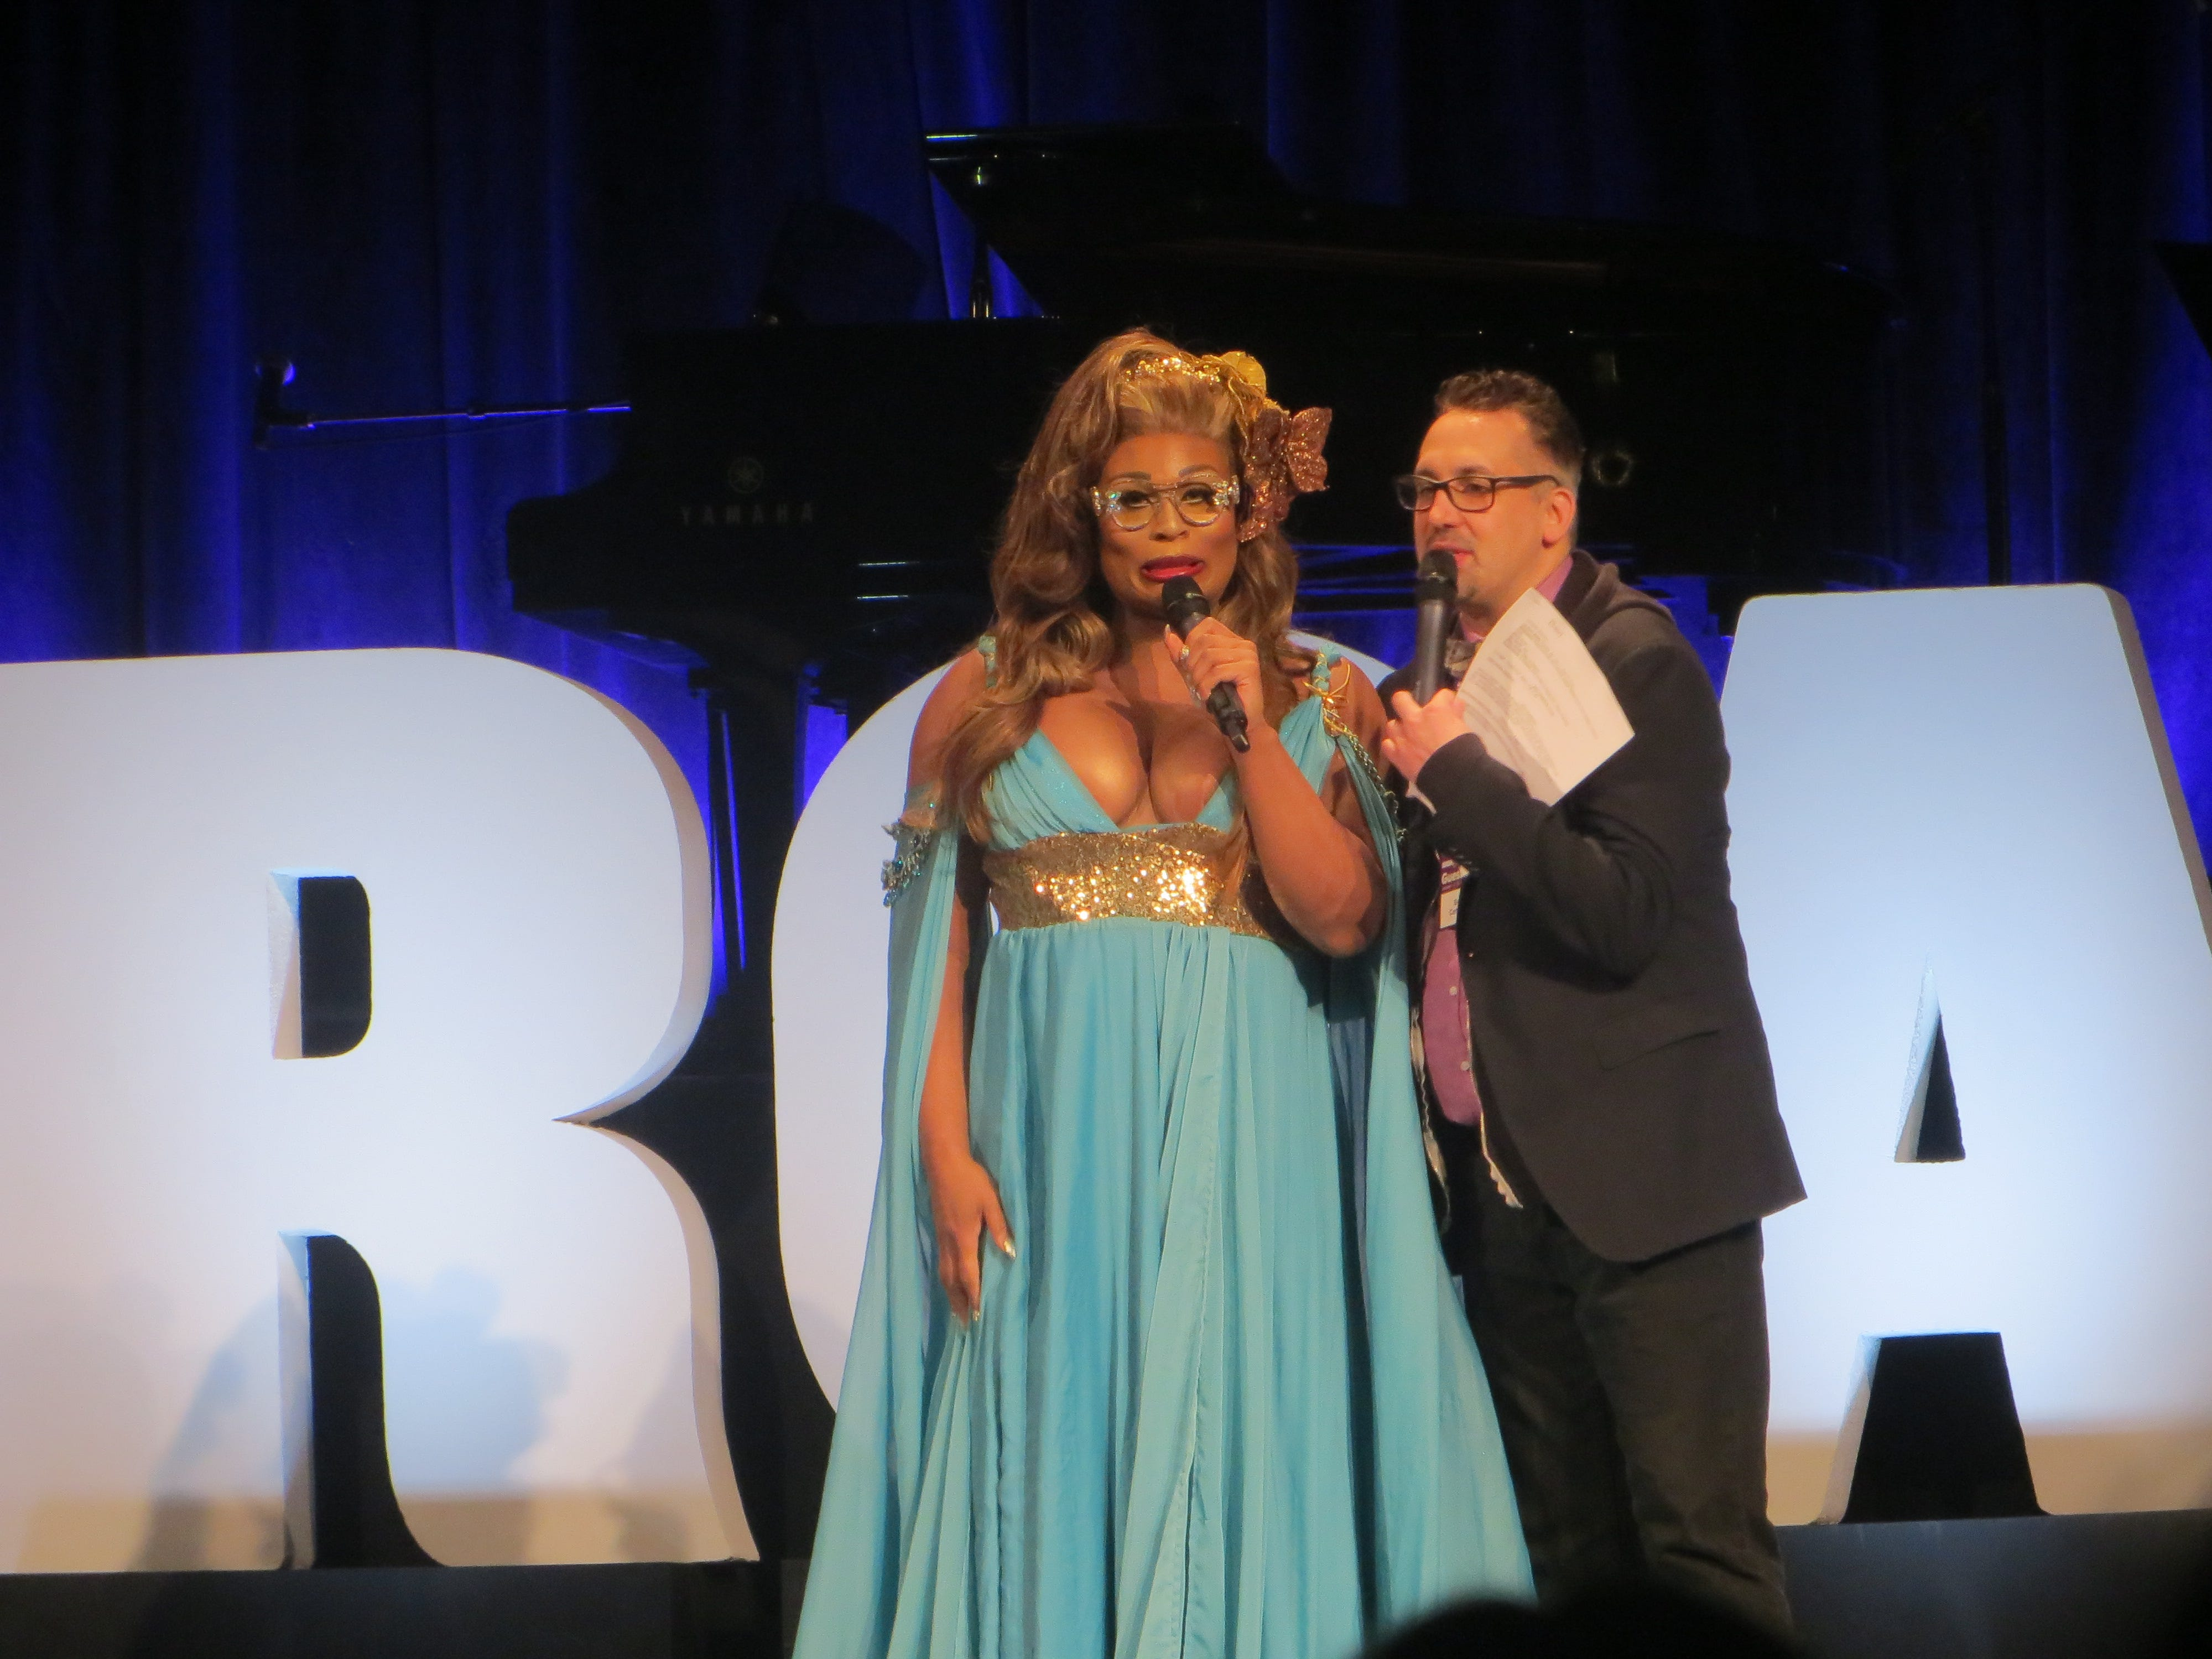 Peppermint and Ben Cameron introduce the Lip Sync Battle at BroadwayCon 2019, held Jan. 11 to 13, 2019, at the New York Hilton Midtown in Manhattan.